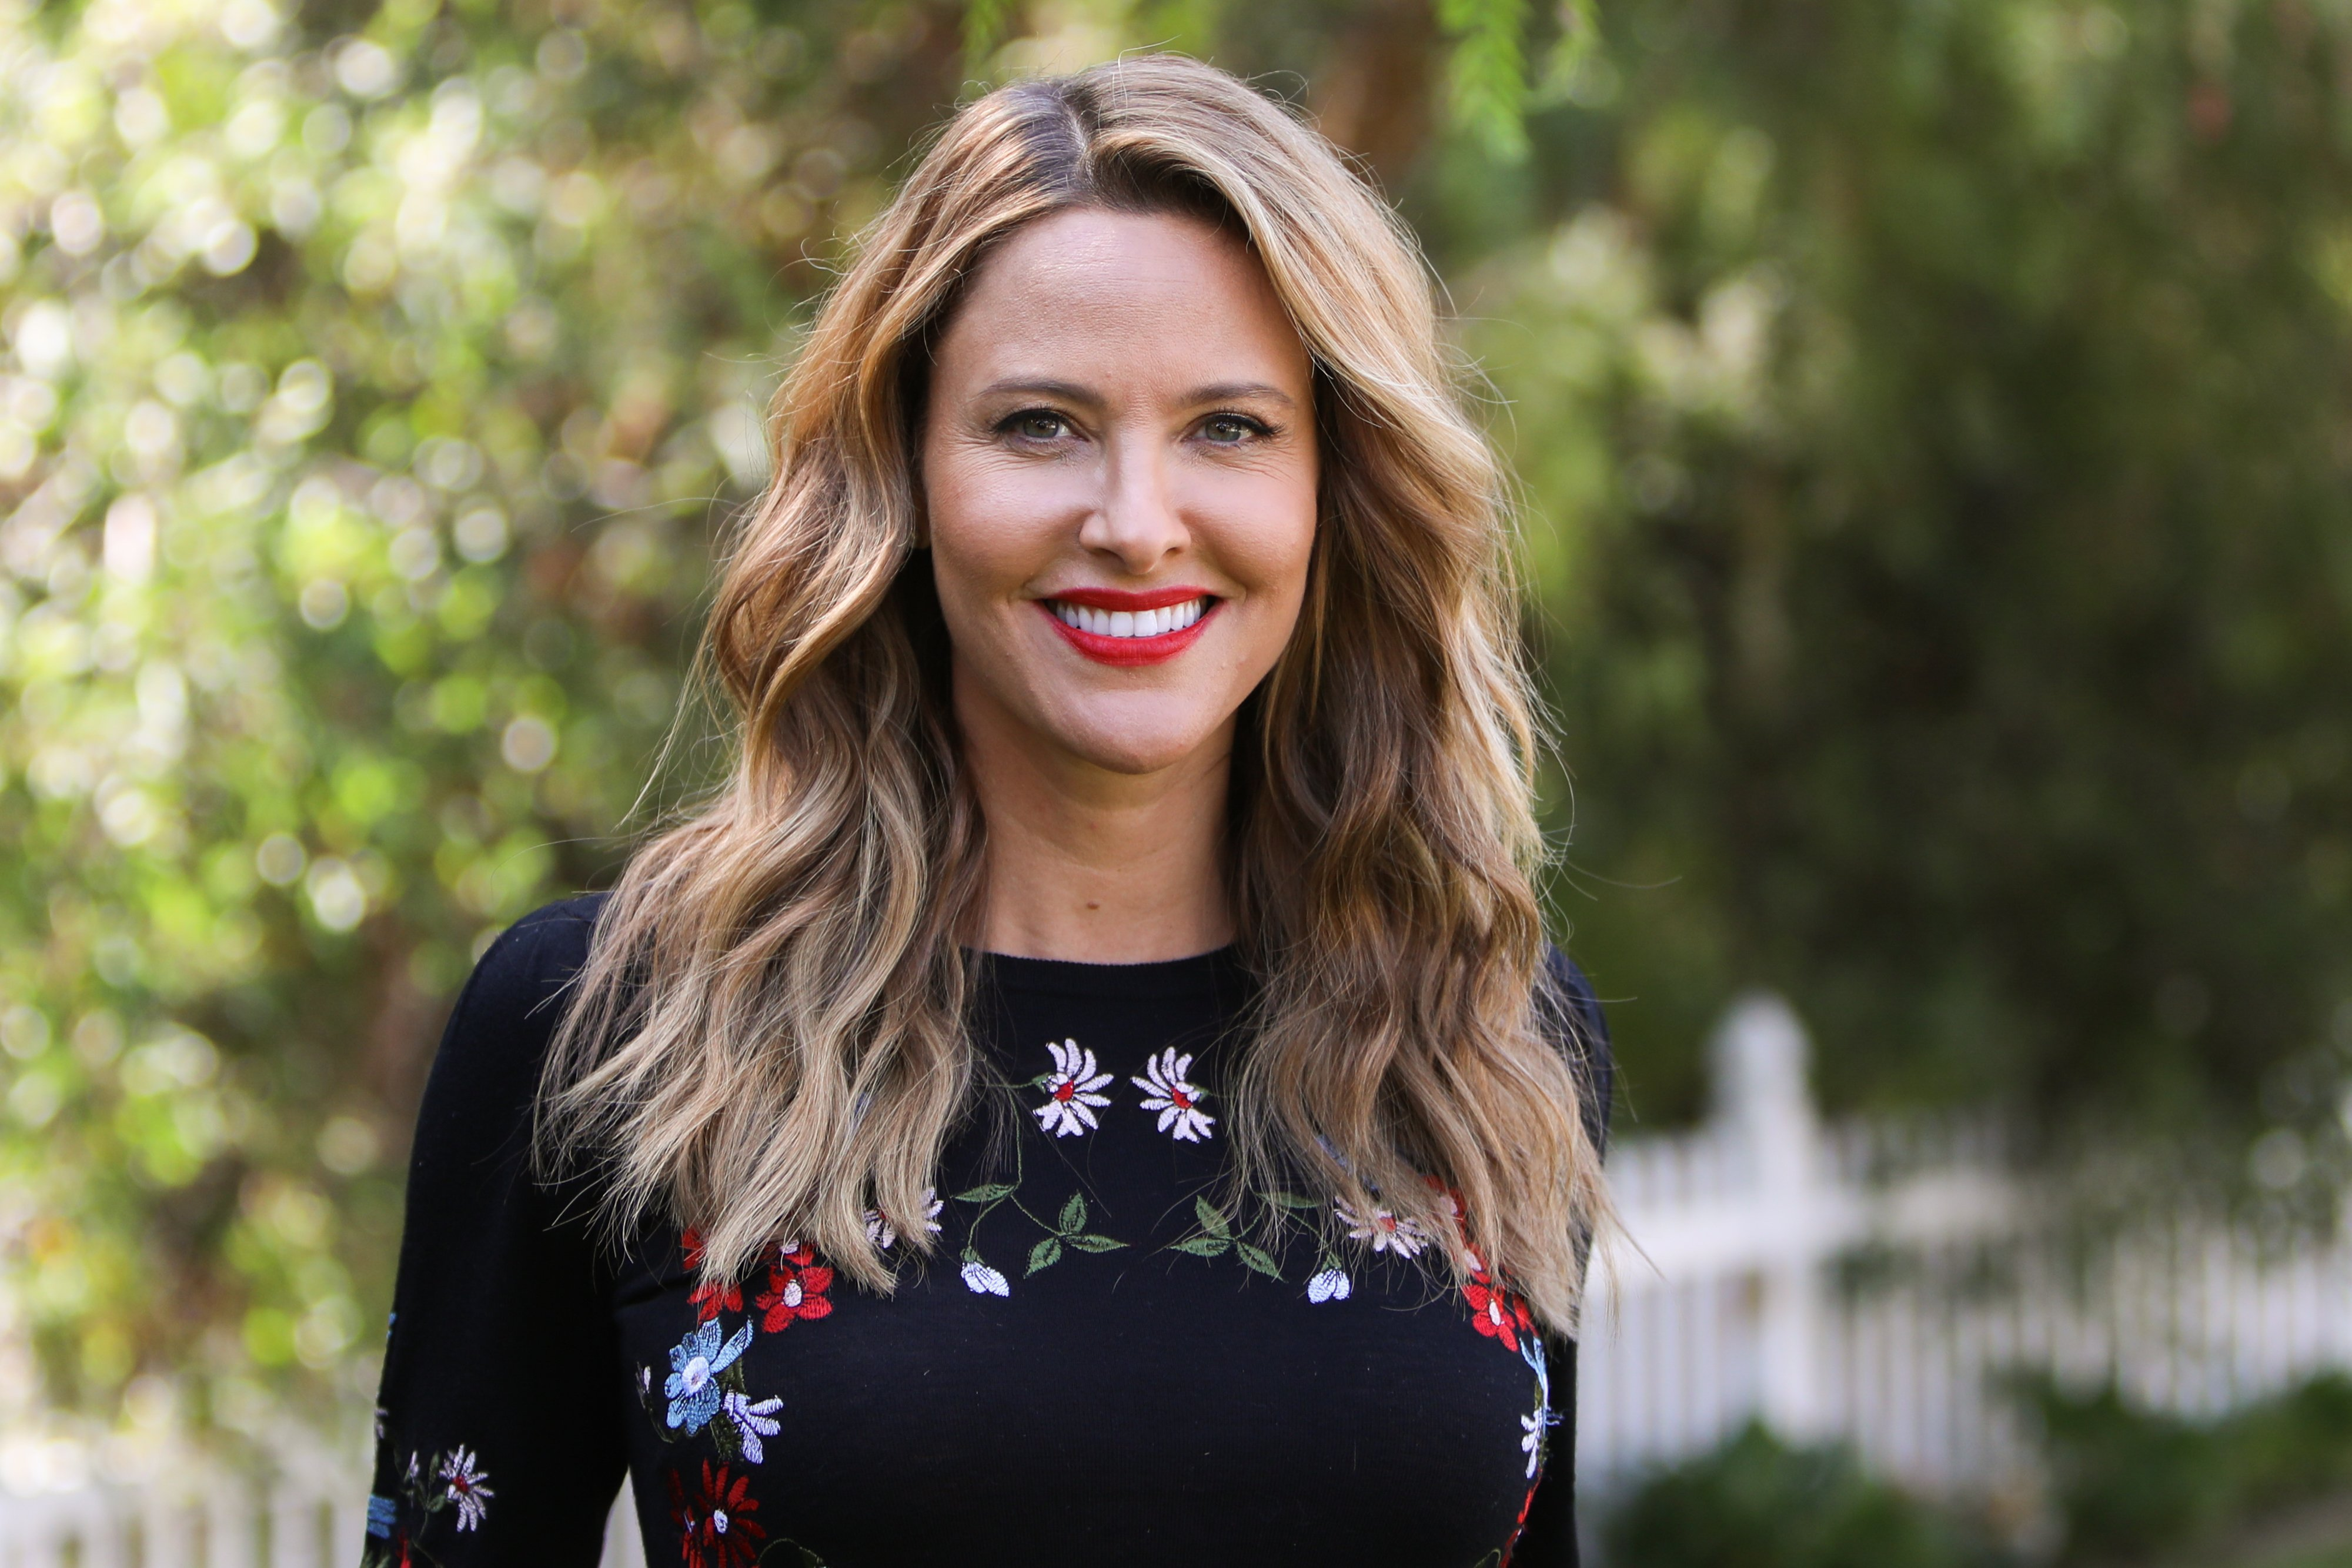 """Jill Wagner visits Hallmark Channel's """"Home & Family"""" at Universal Studios Hollywood on September 17, 2019 in Universal City, California. 